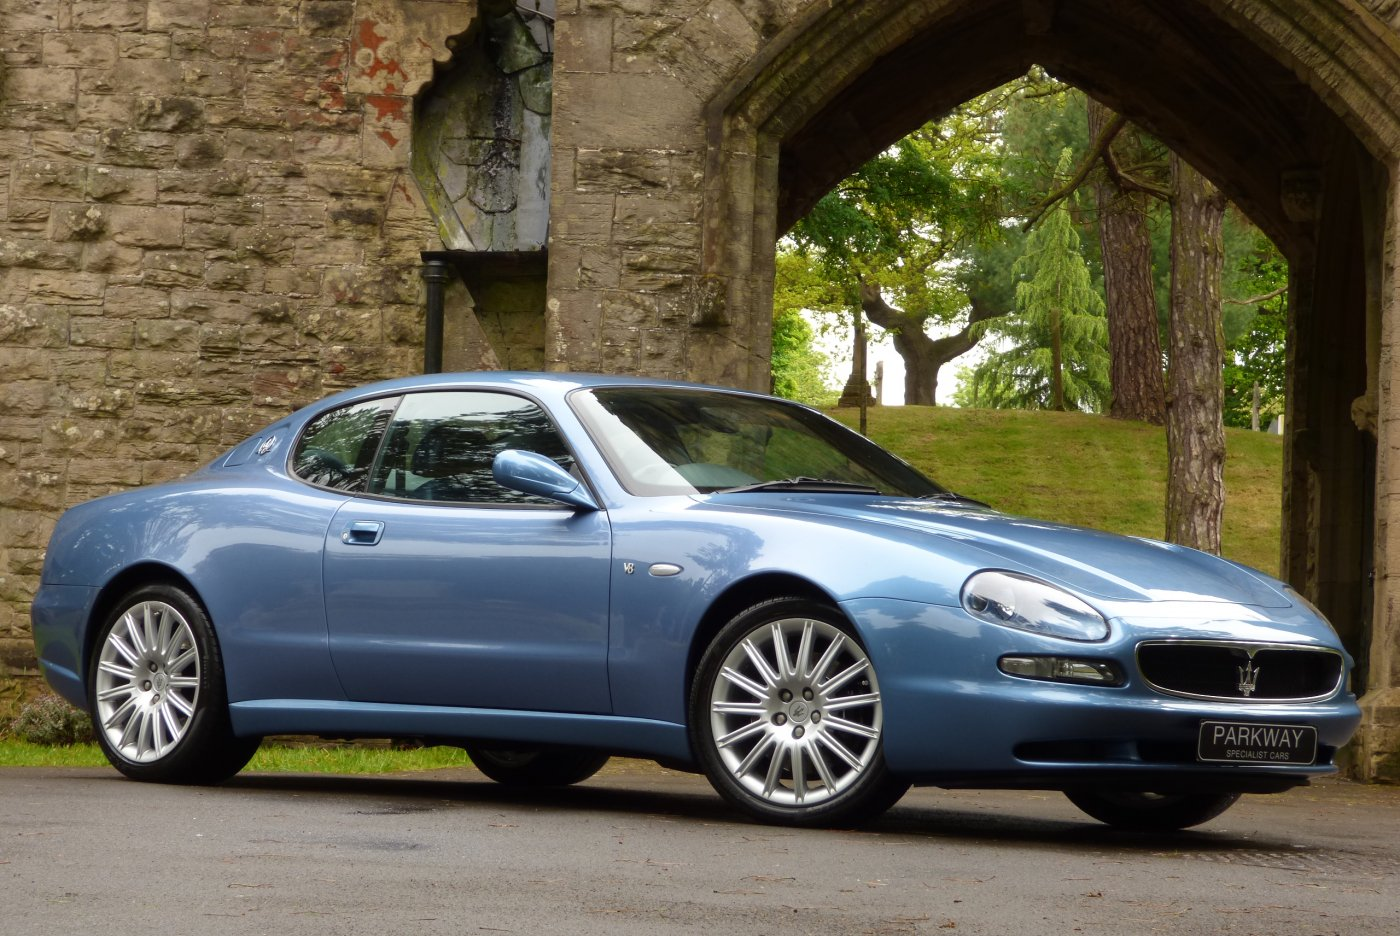 MASERATI 3200 GT COUPE (Collectable Clic) -